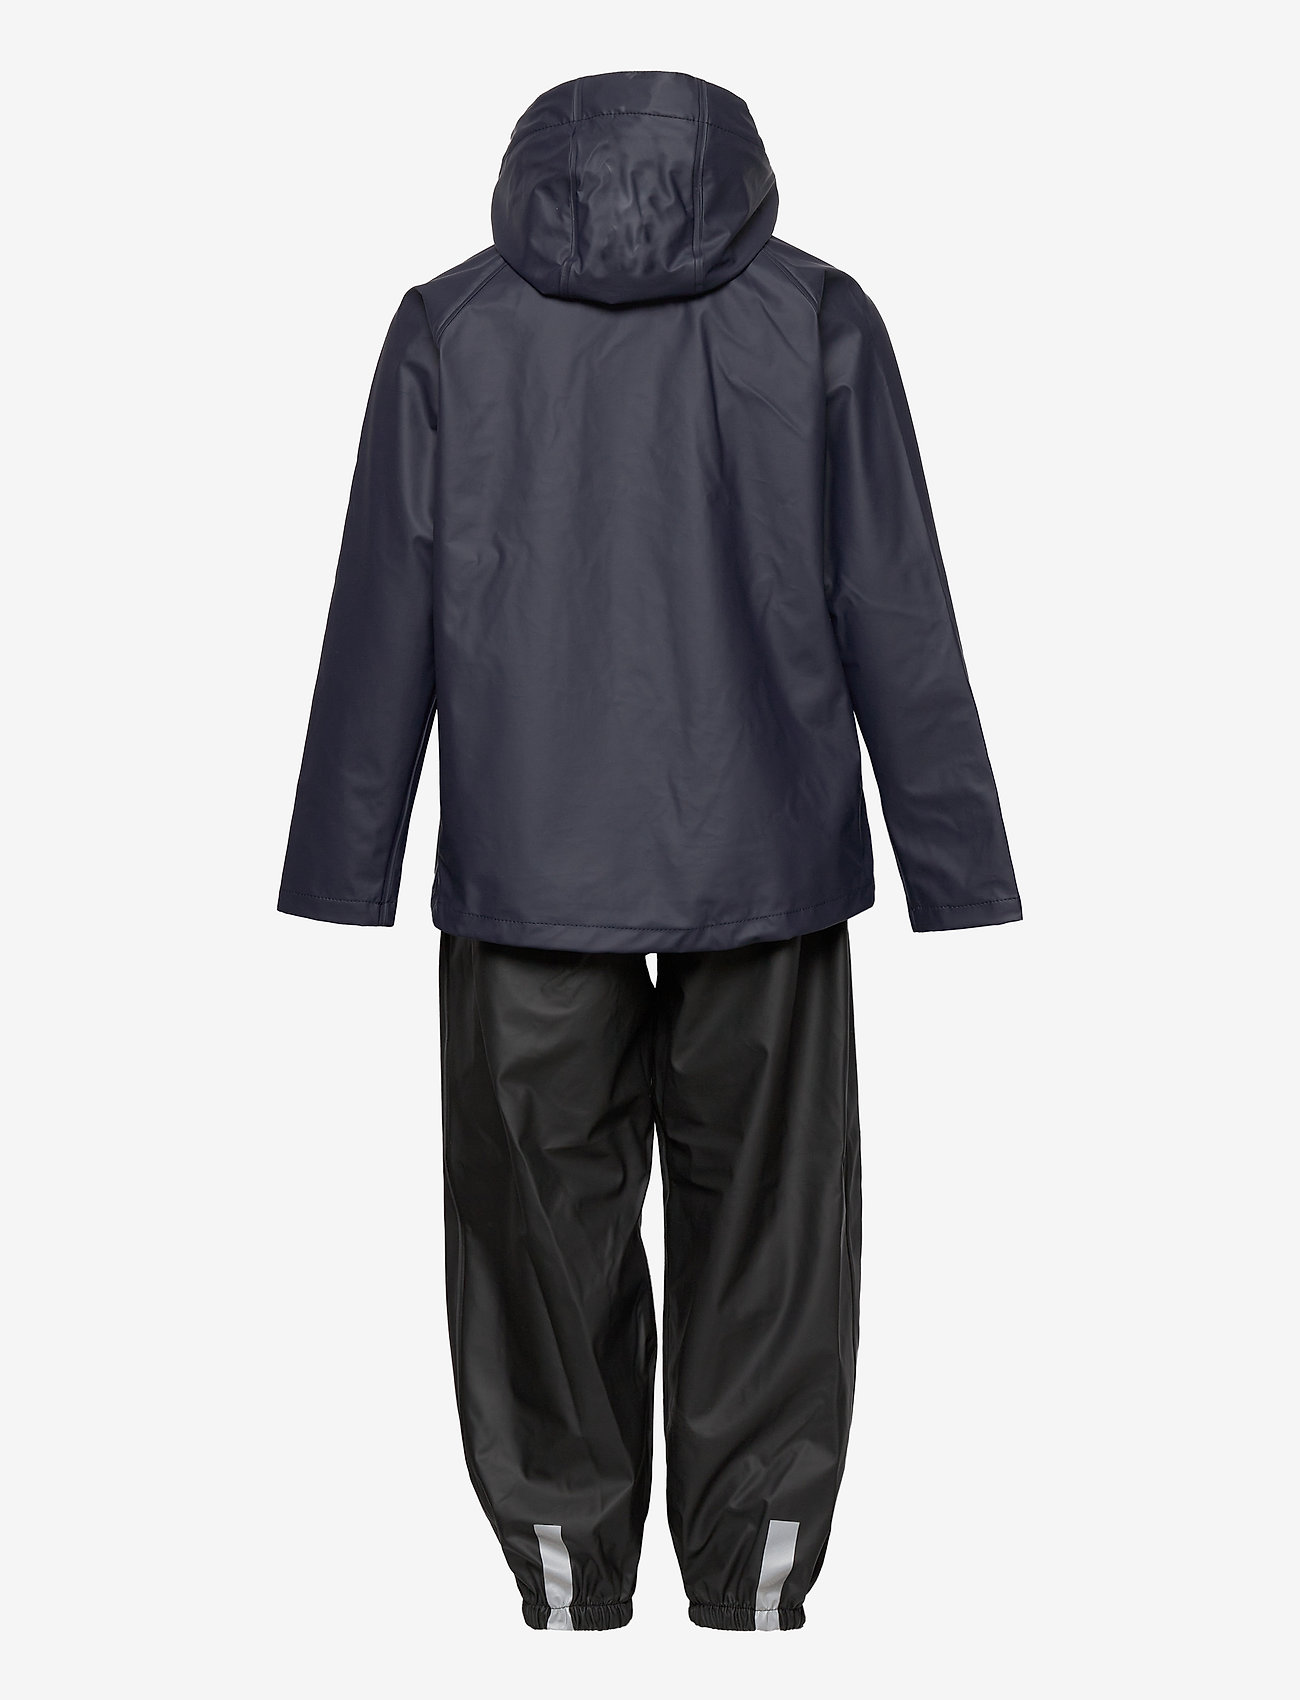 Tretorn - KIDS PACKABLE RAINSET - ensembles - 080/navy - 1